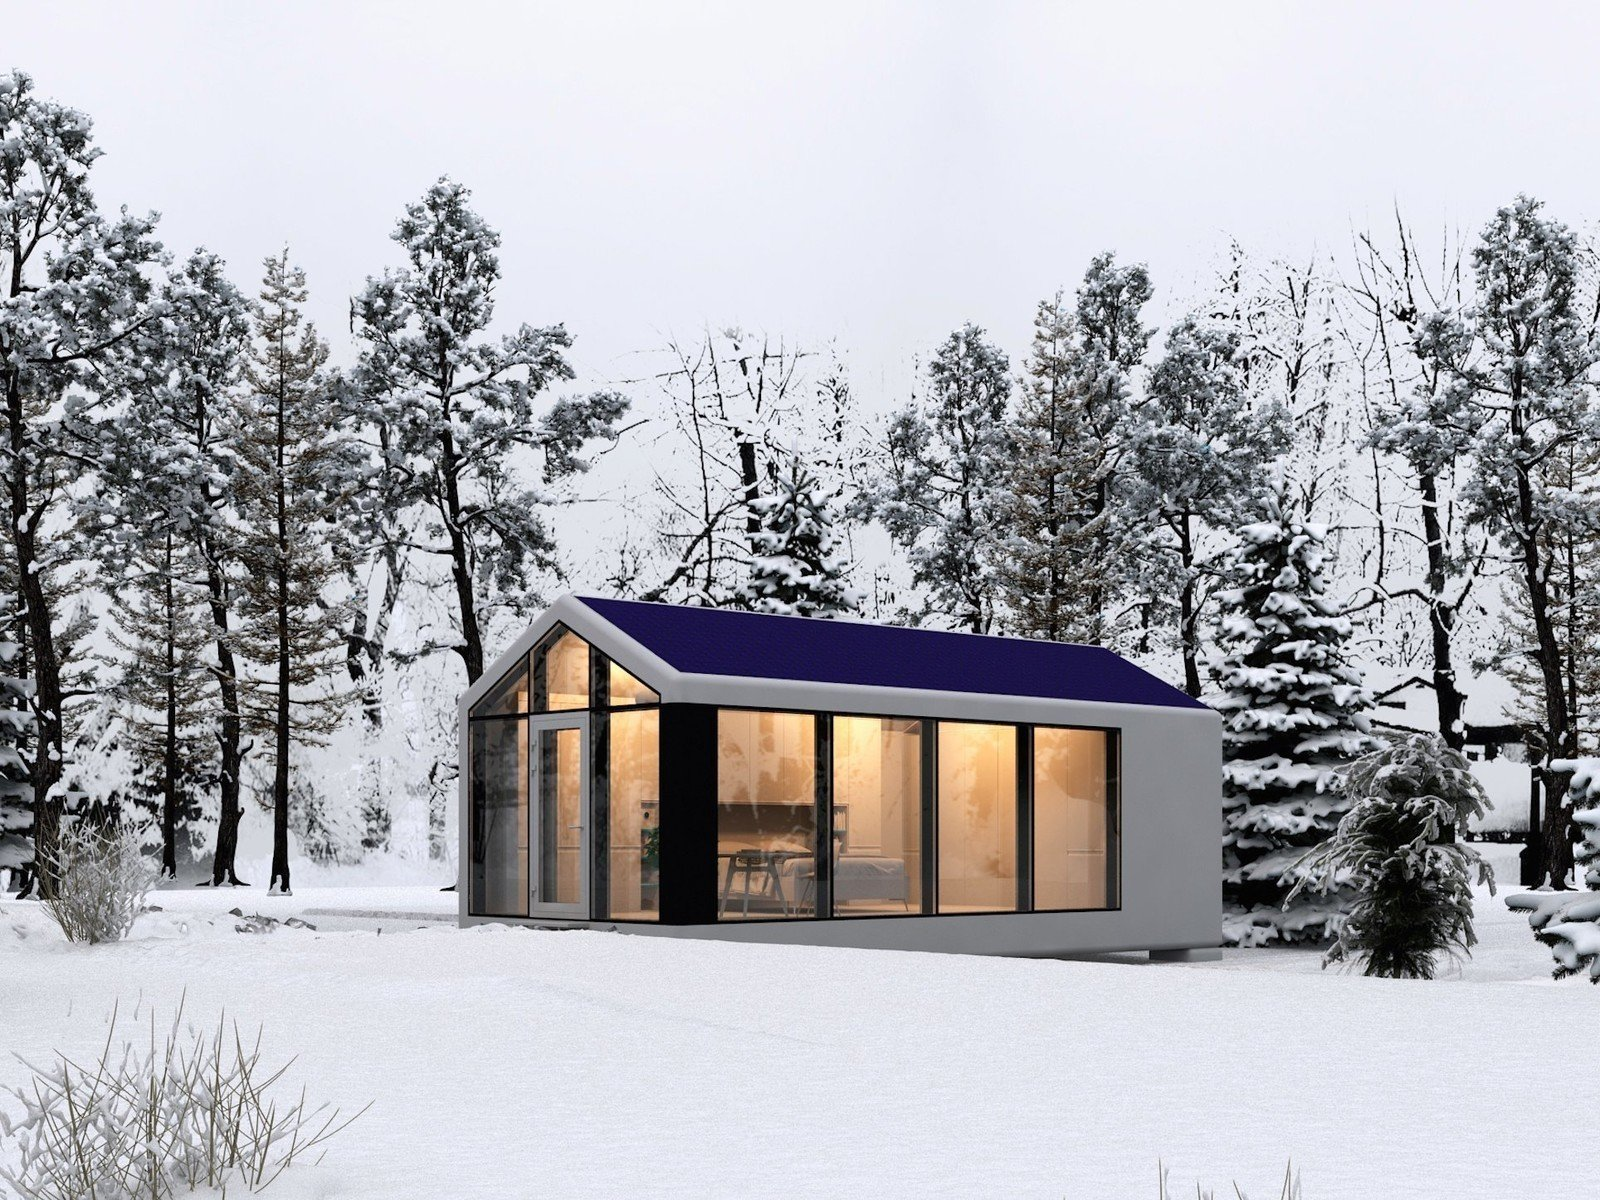 Outdoor  Photo 1 of 6 in This Zero-Energy Passive Mobile Prefab Was Partially 3D Printed